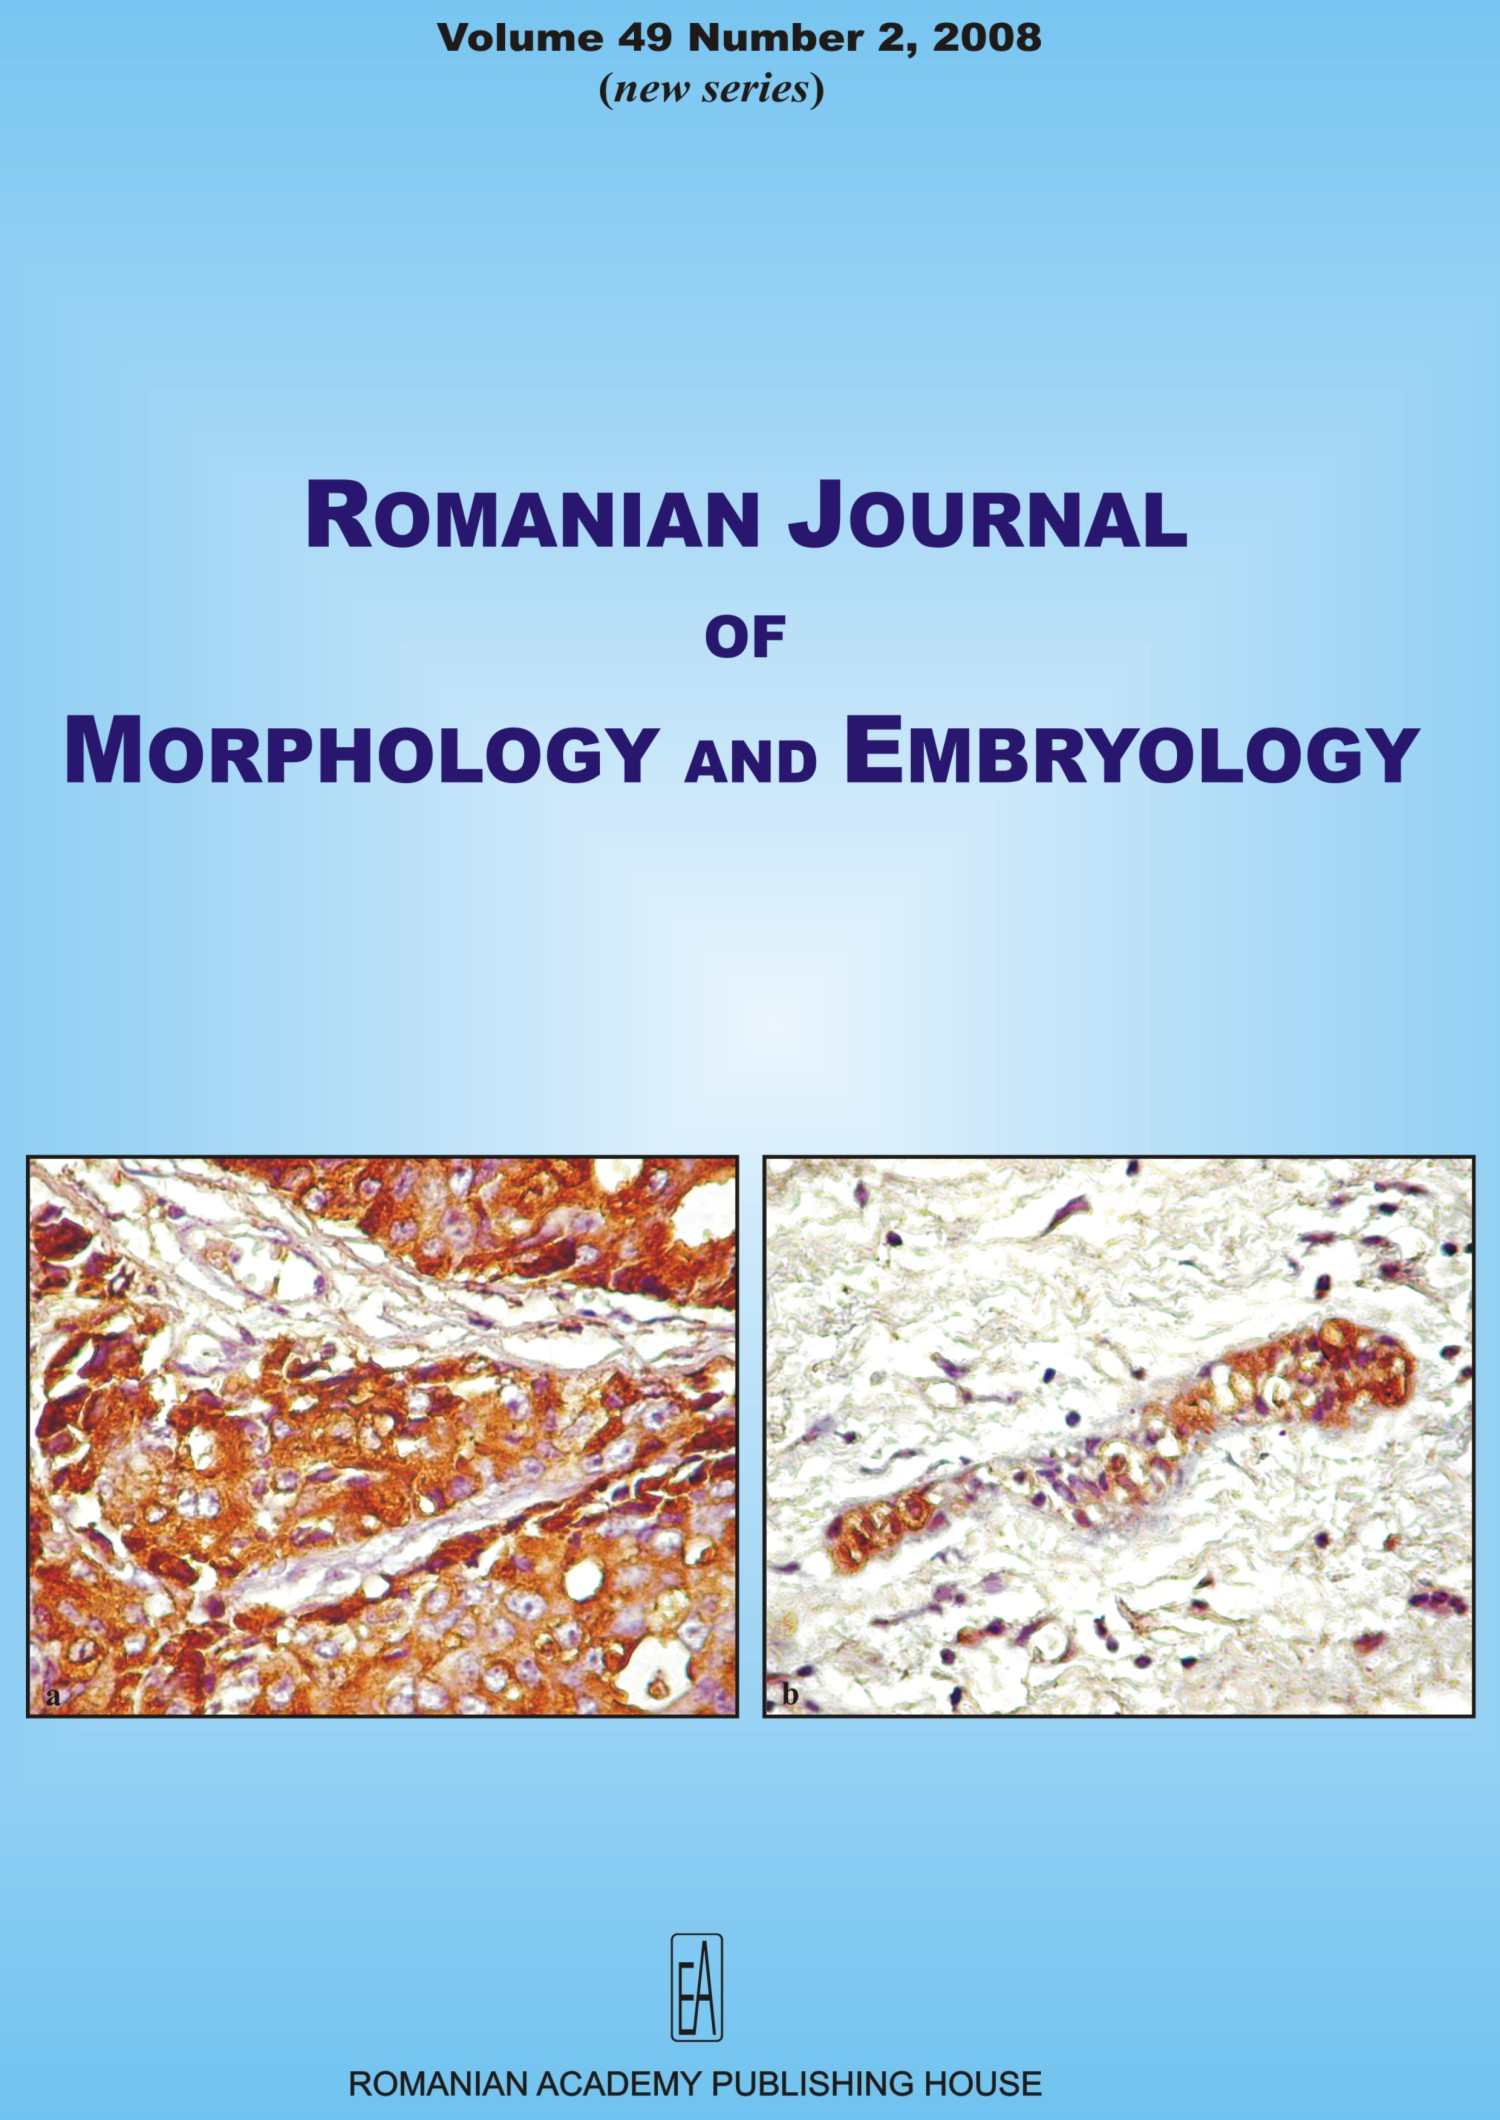 Romanian Journal of Morphology and Embryology, vol. 49 no. 2, 2008